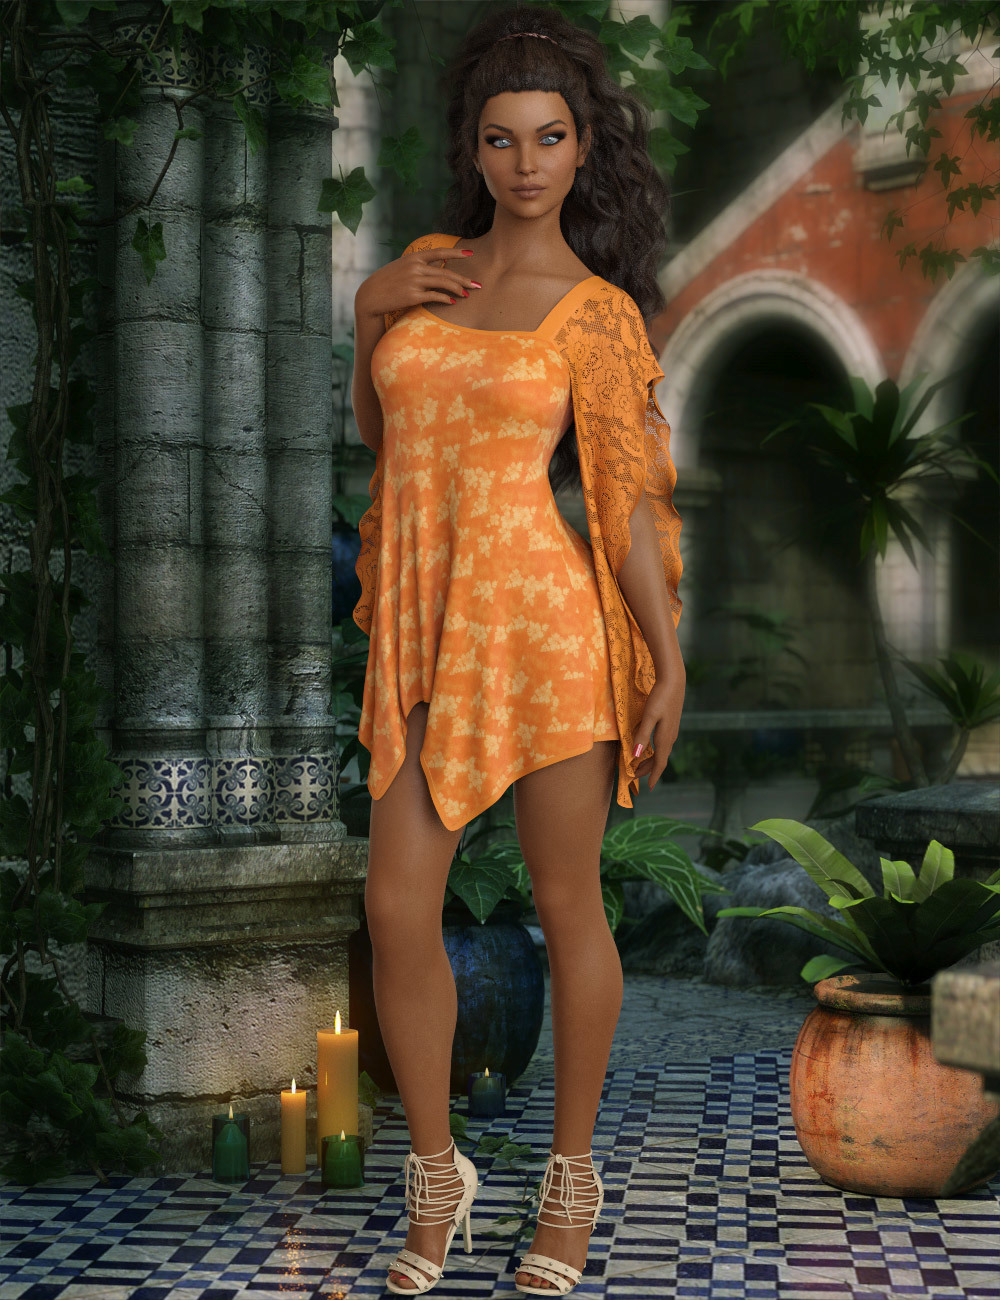 InStyle - dForce - Belinda Dress for G8F by -Valkyrie-